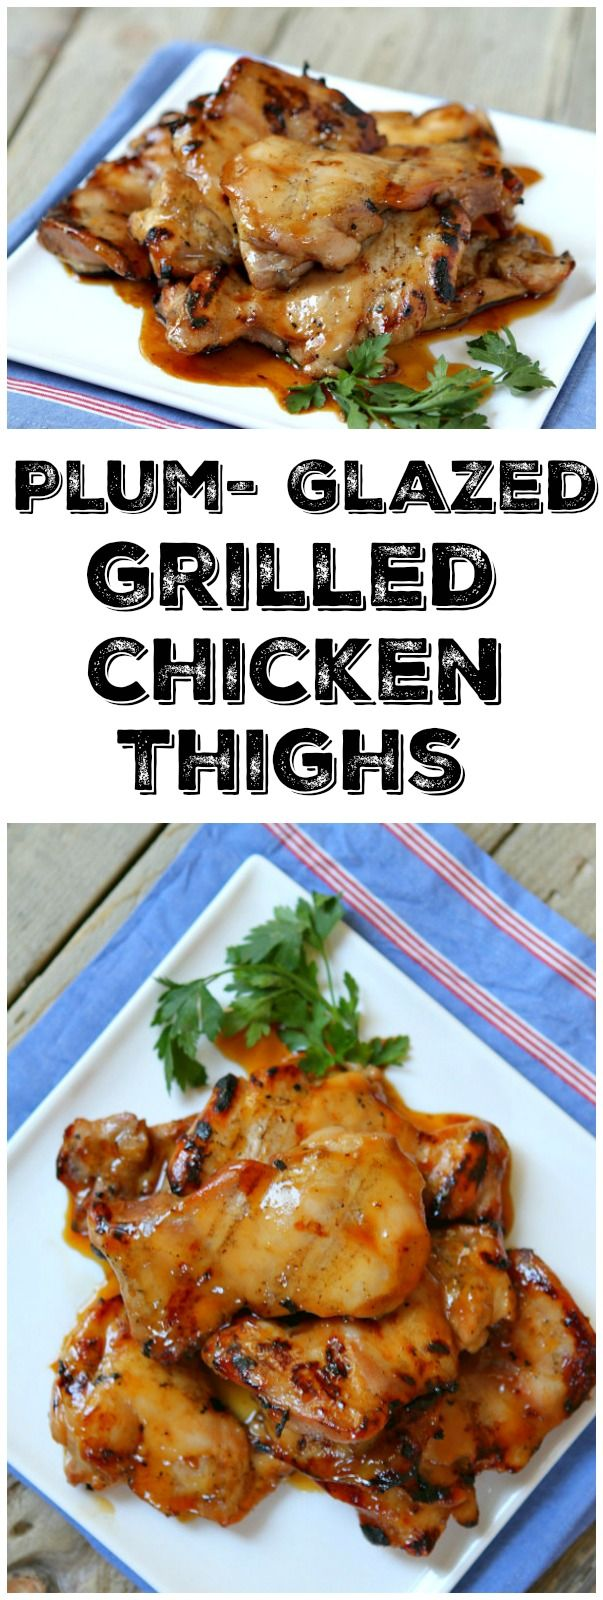 grilled chicken thigh recipes easy grilled chicken thighs recipe 30370